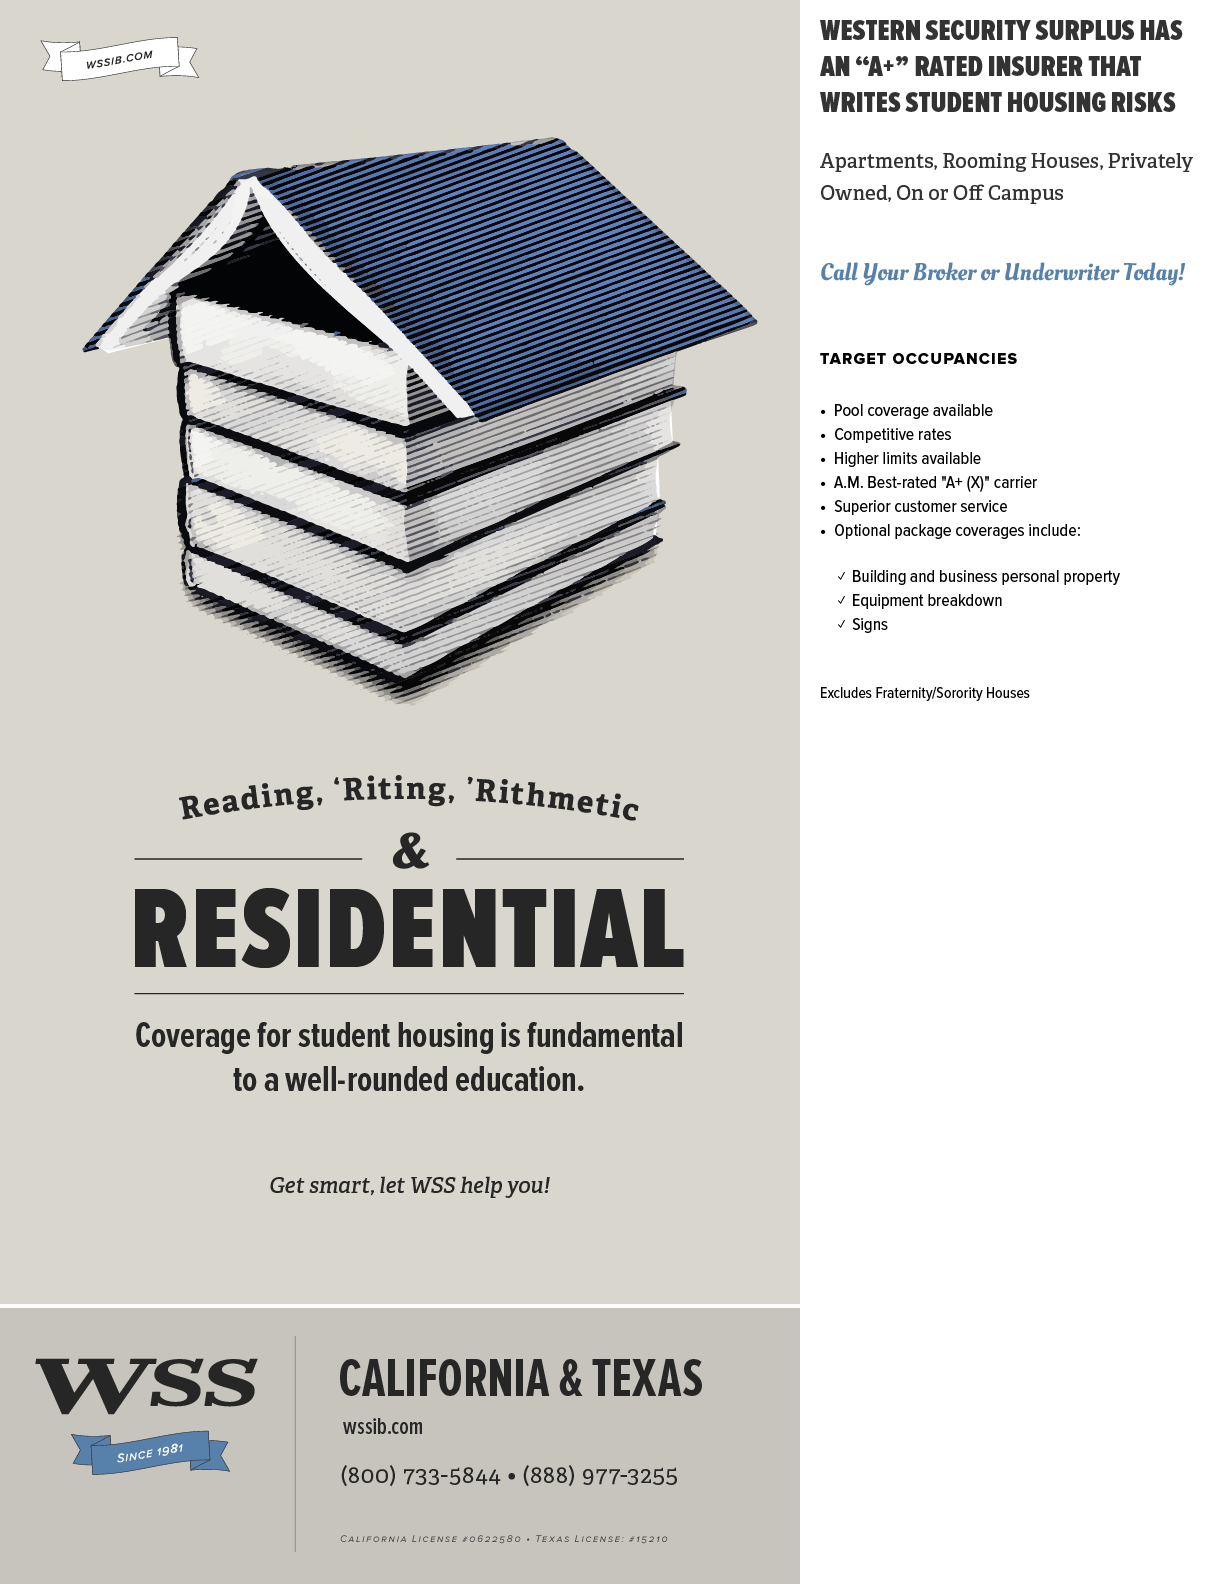 WSS-Flyer-StudentHousing.png